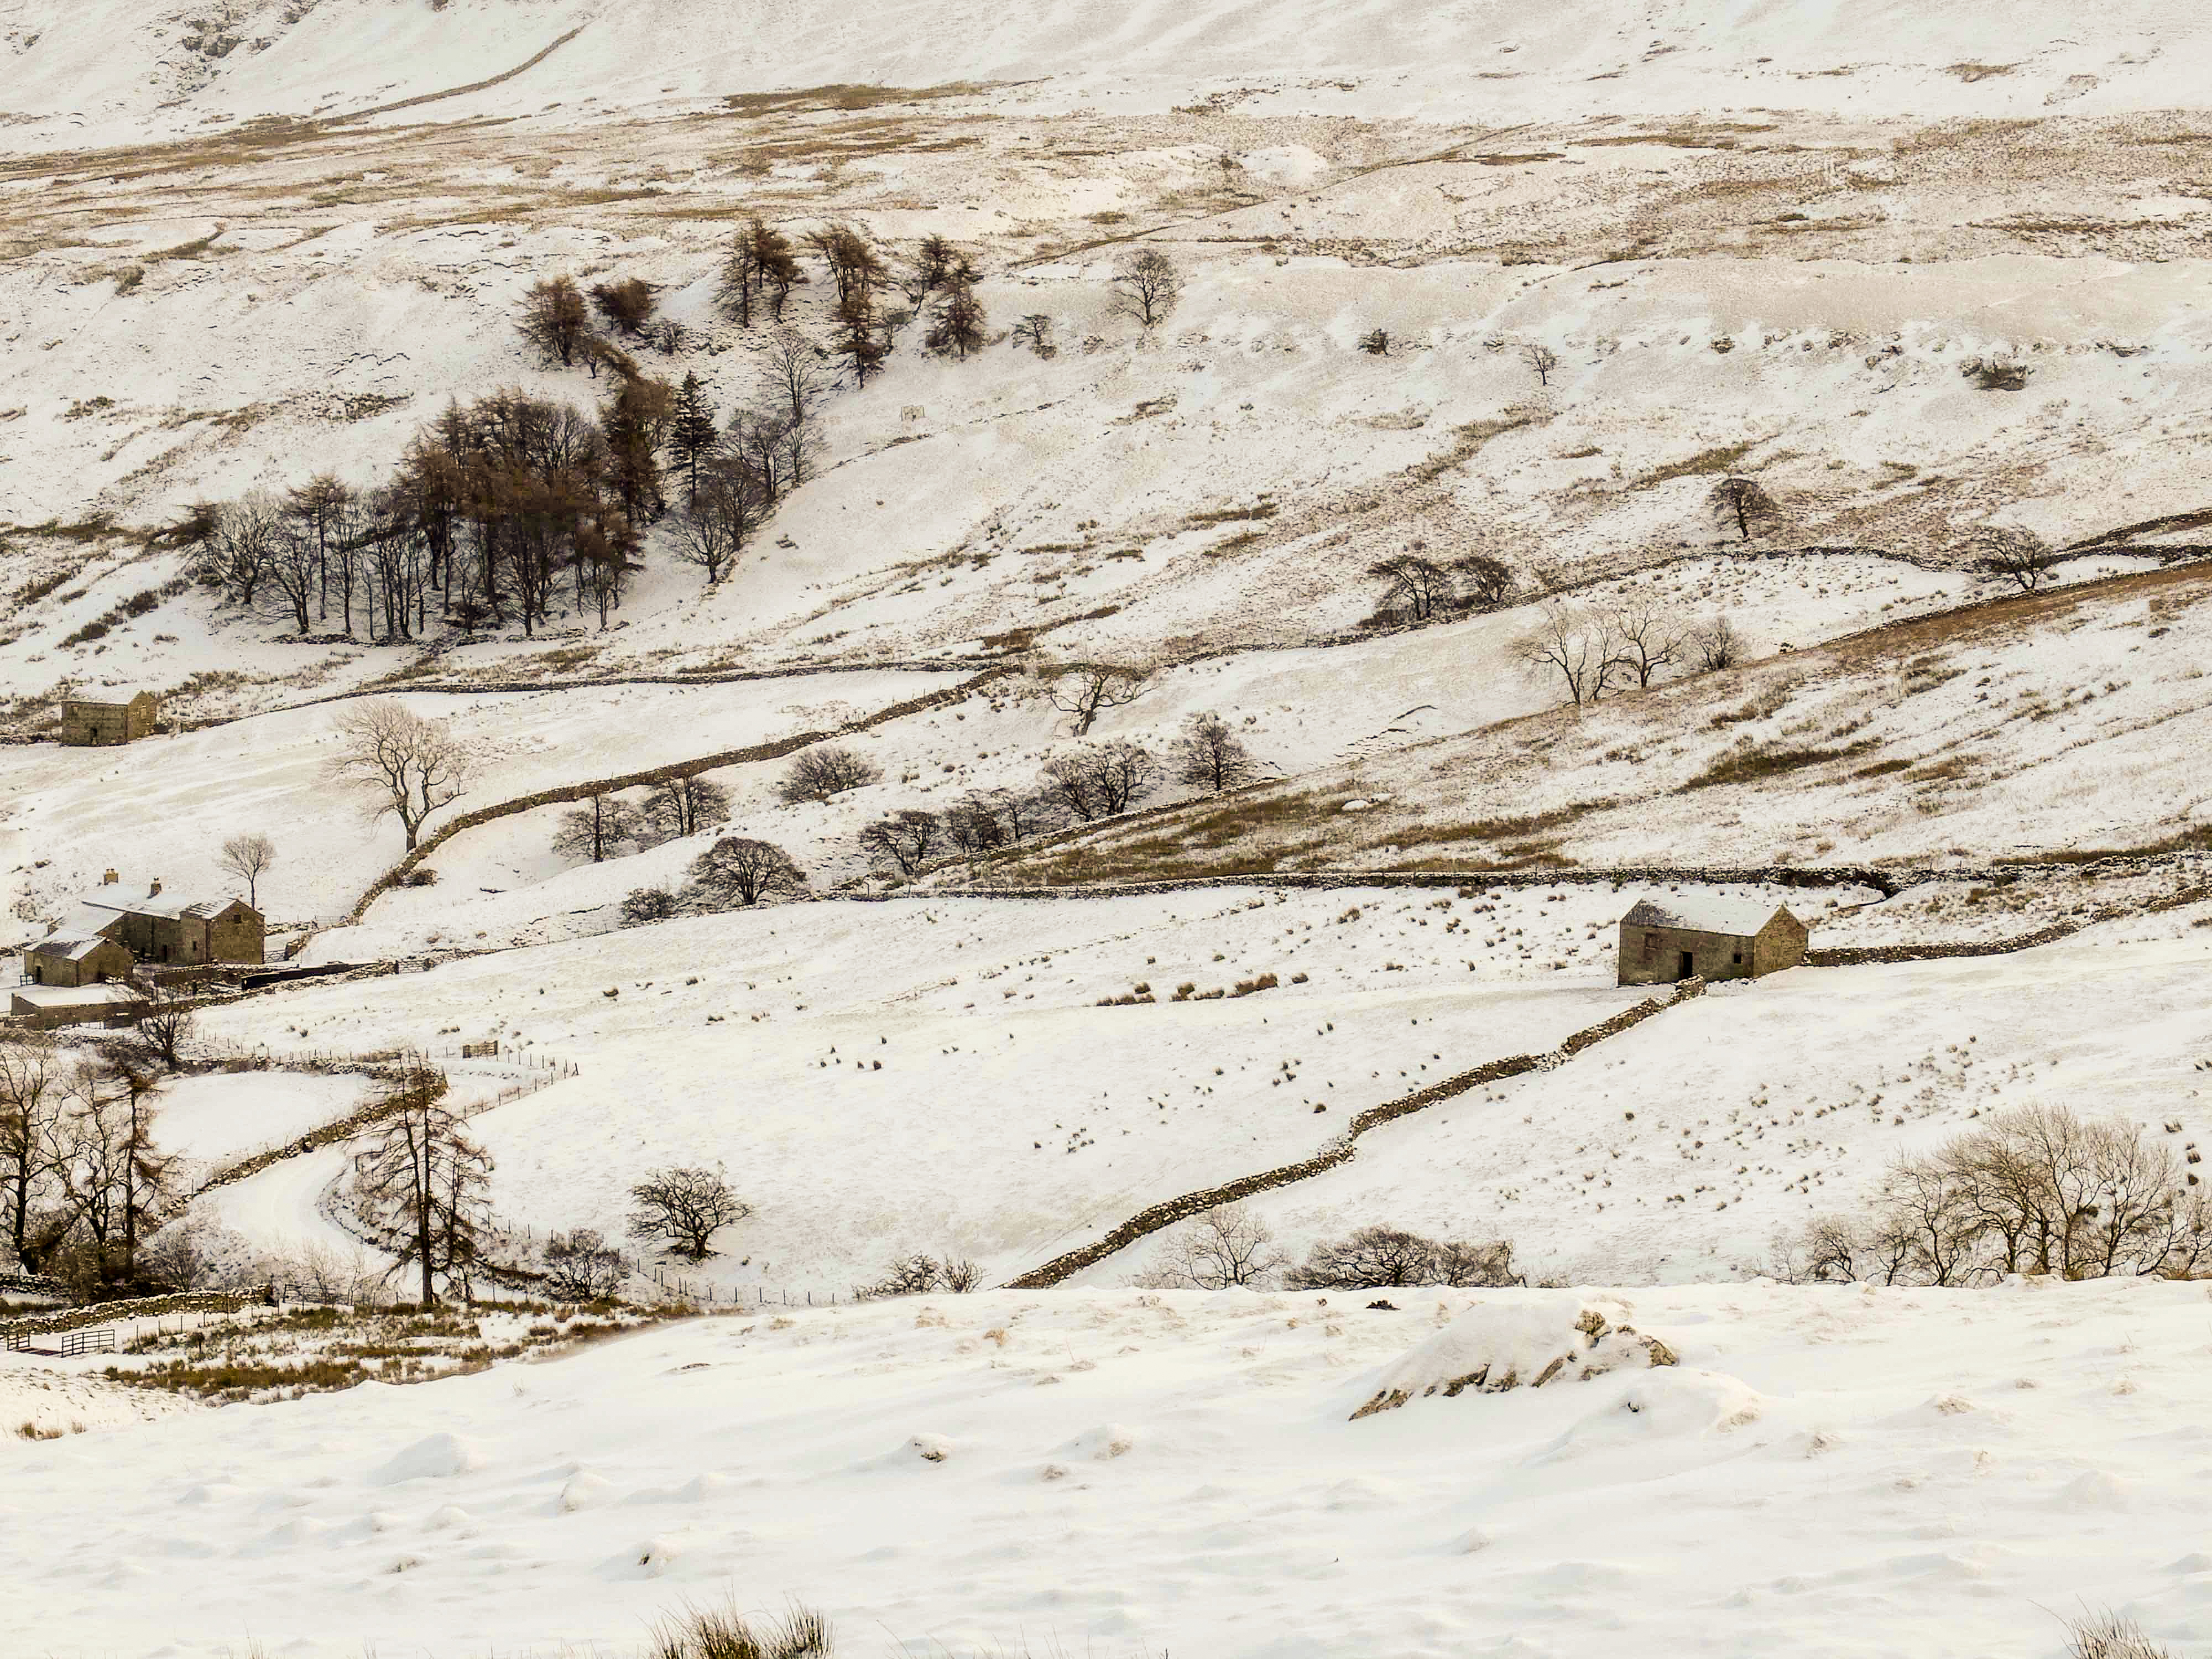 Winter Yorkshire Dales (8)